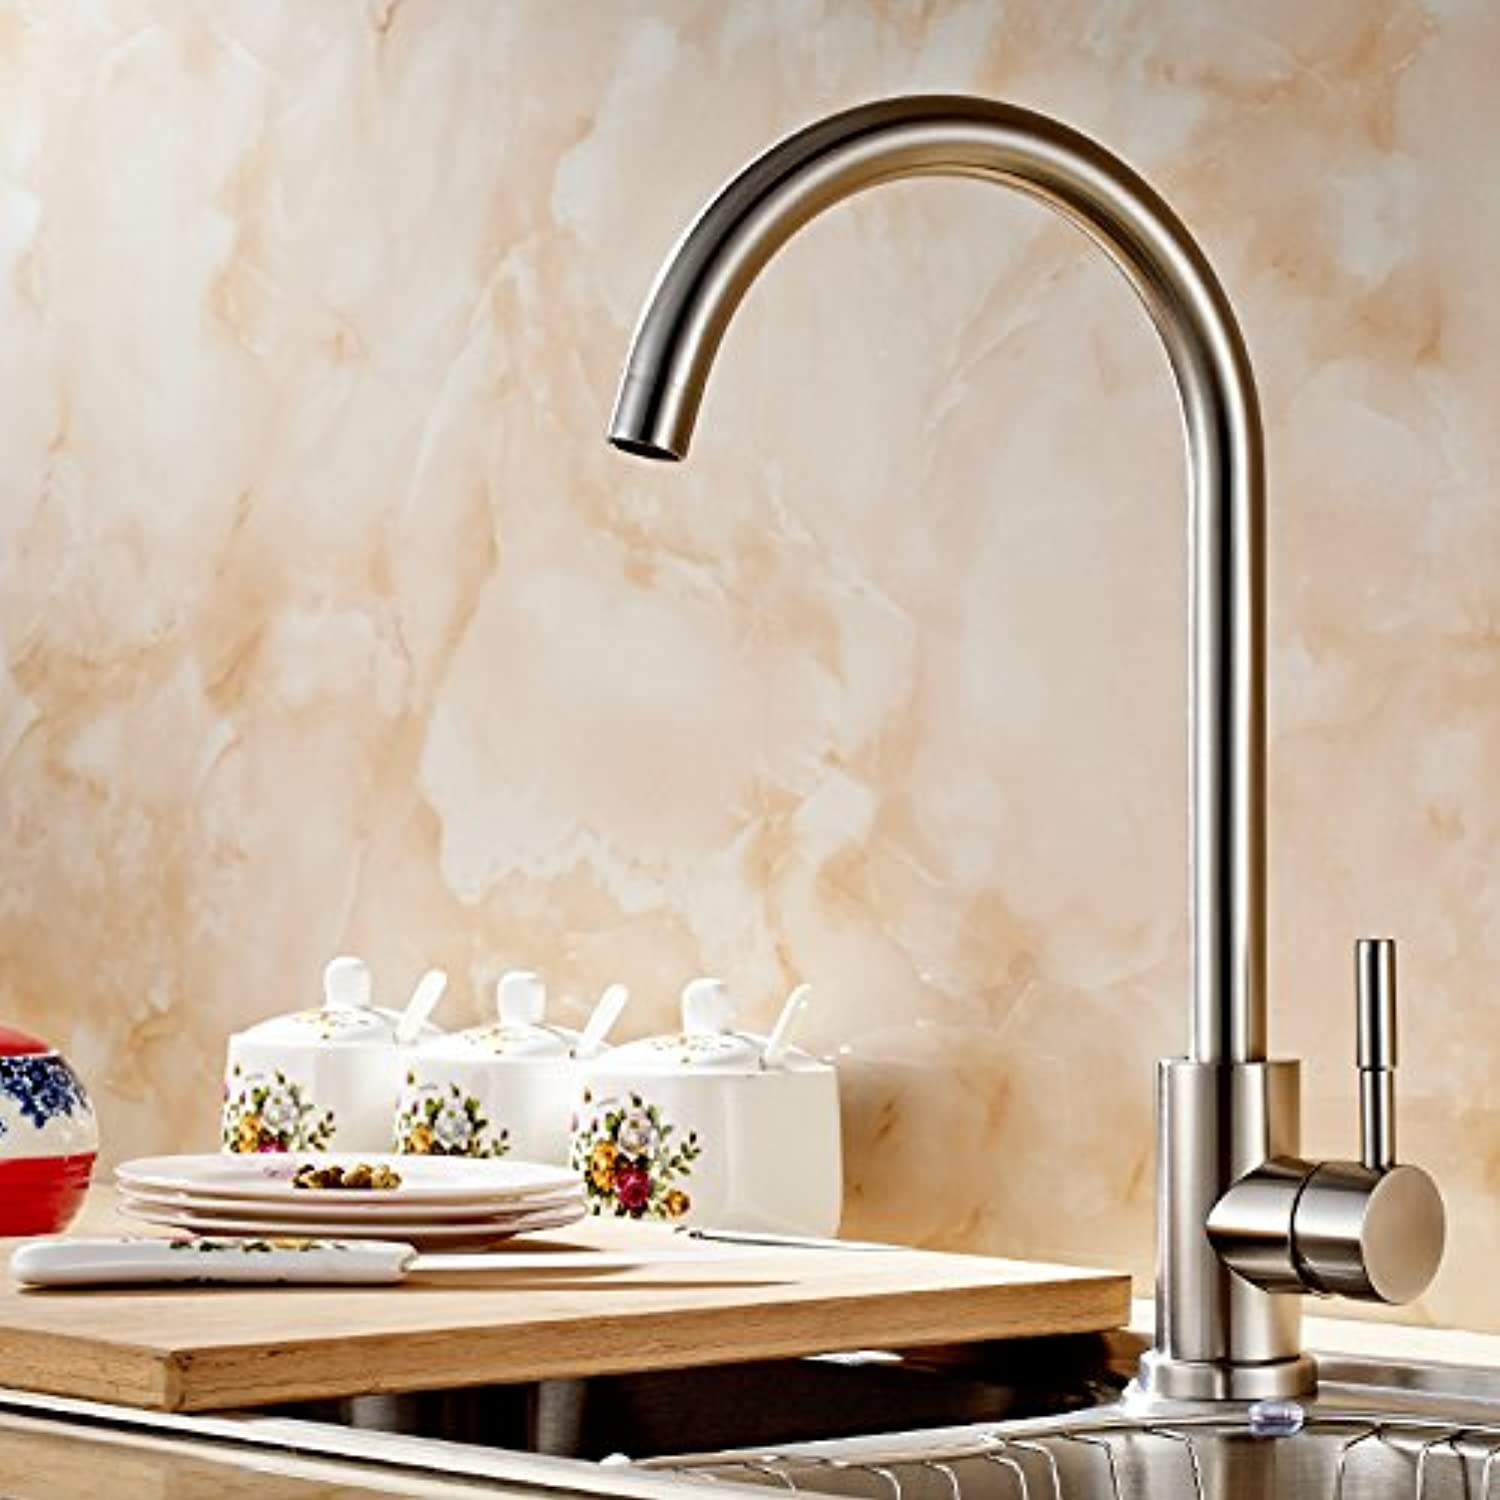 Lpophy Bathroom Sink Mixer Taps Faucet Bath Waterfall Cold and Hot Water Tap for Washroom Bathroom and Kitchen Stainless Steel Hot and Cold Water